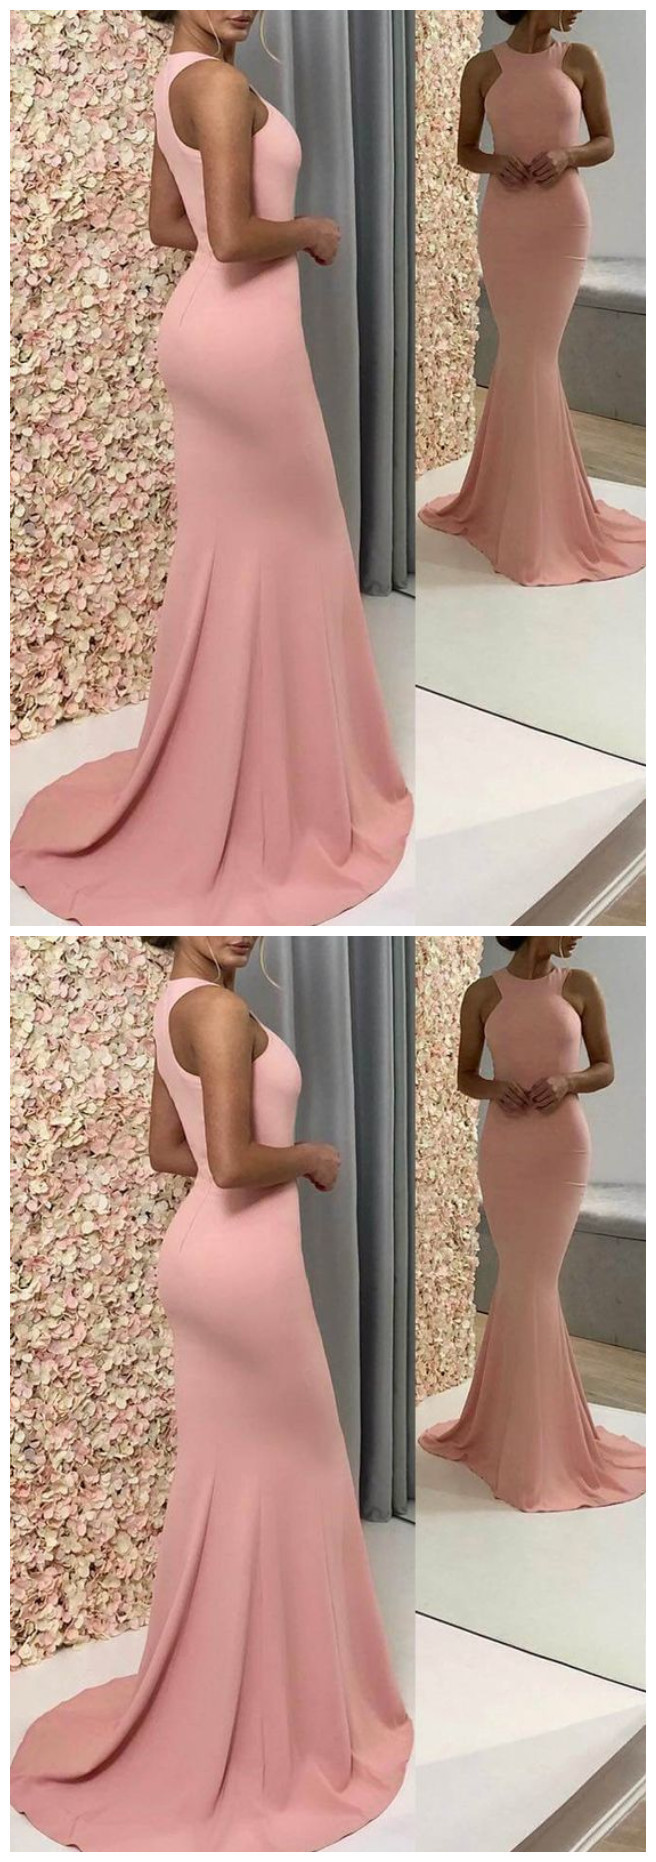 O-Neck Mermaid Prom Dresses,Long Prom Dresses,Cheap Prom Dresses, Evening Dress